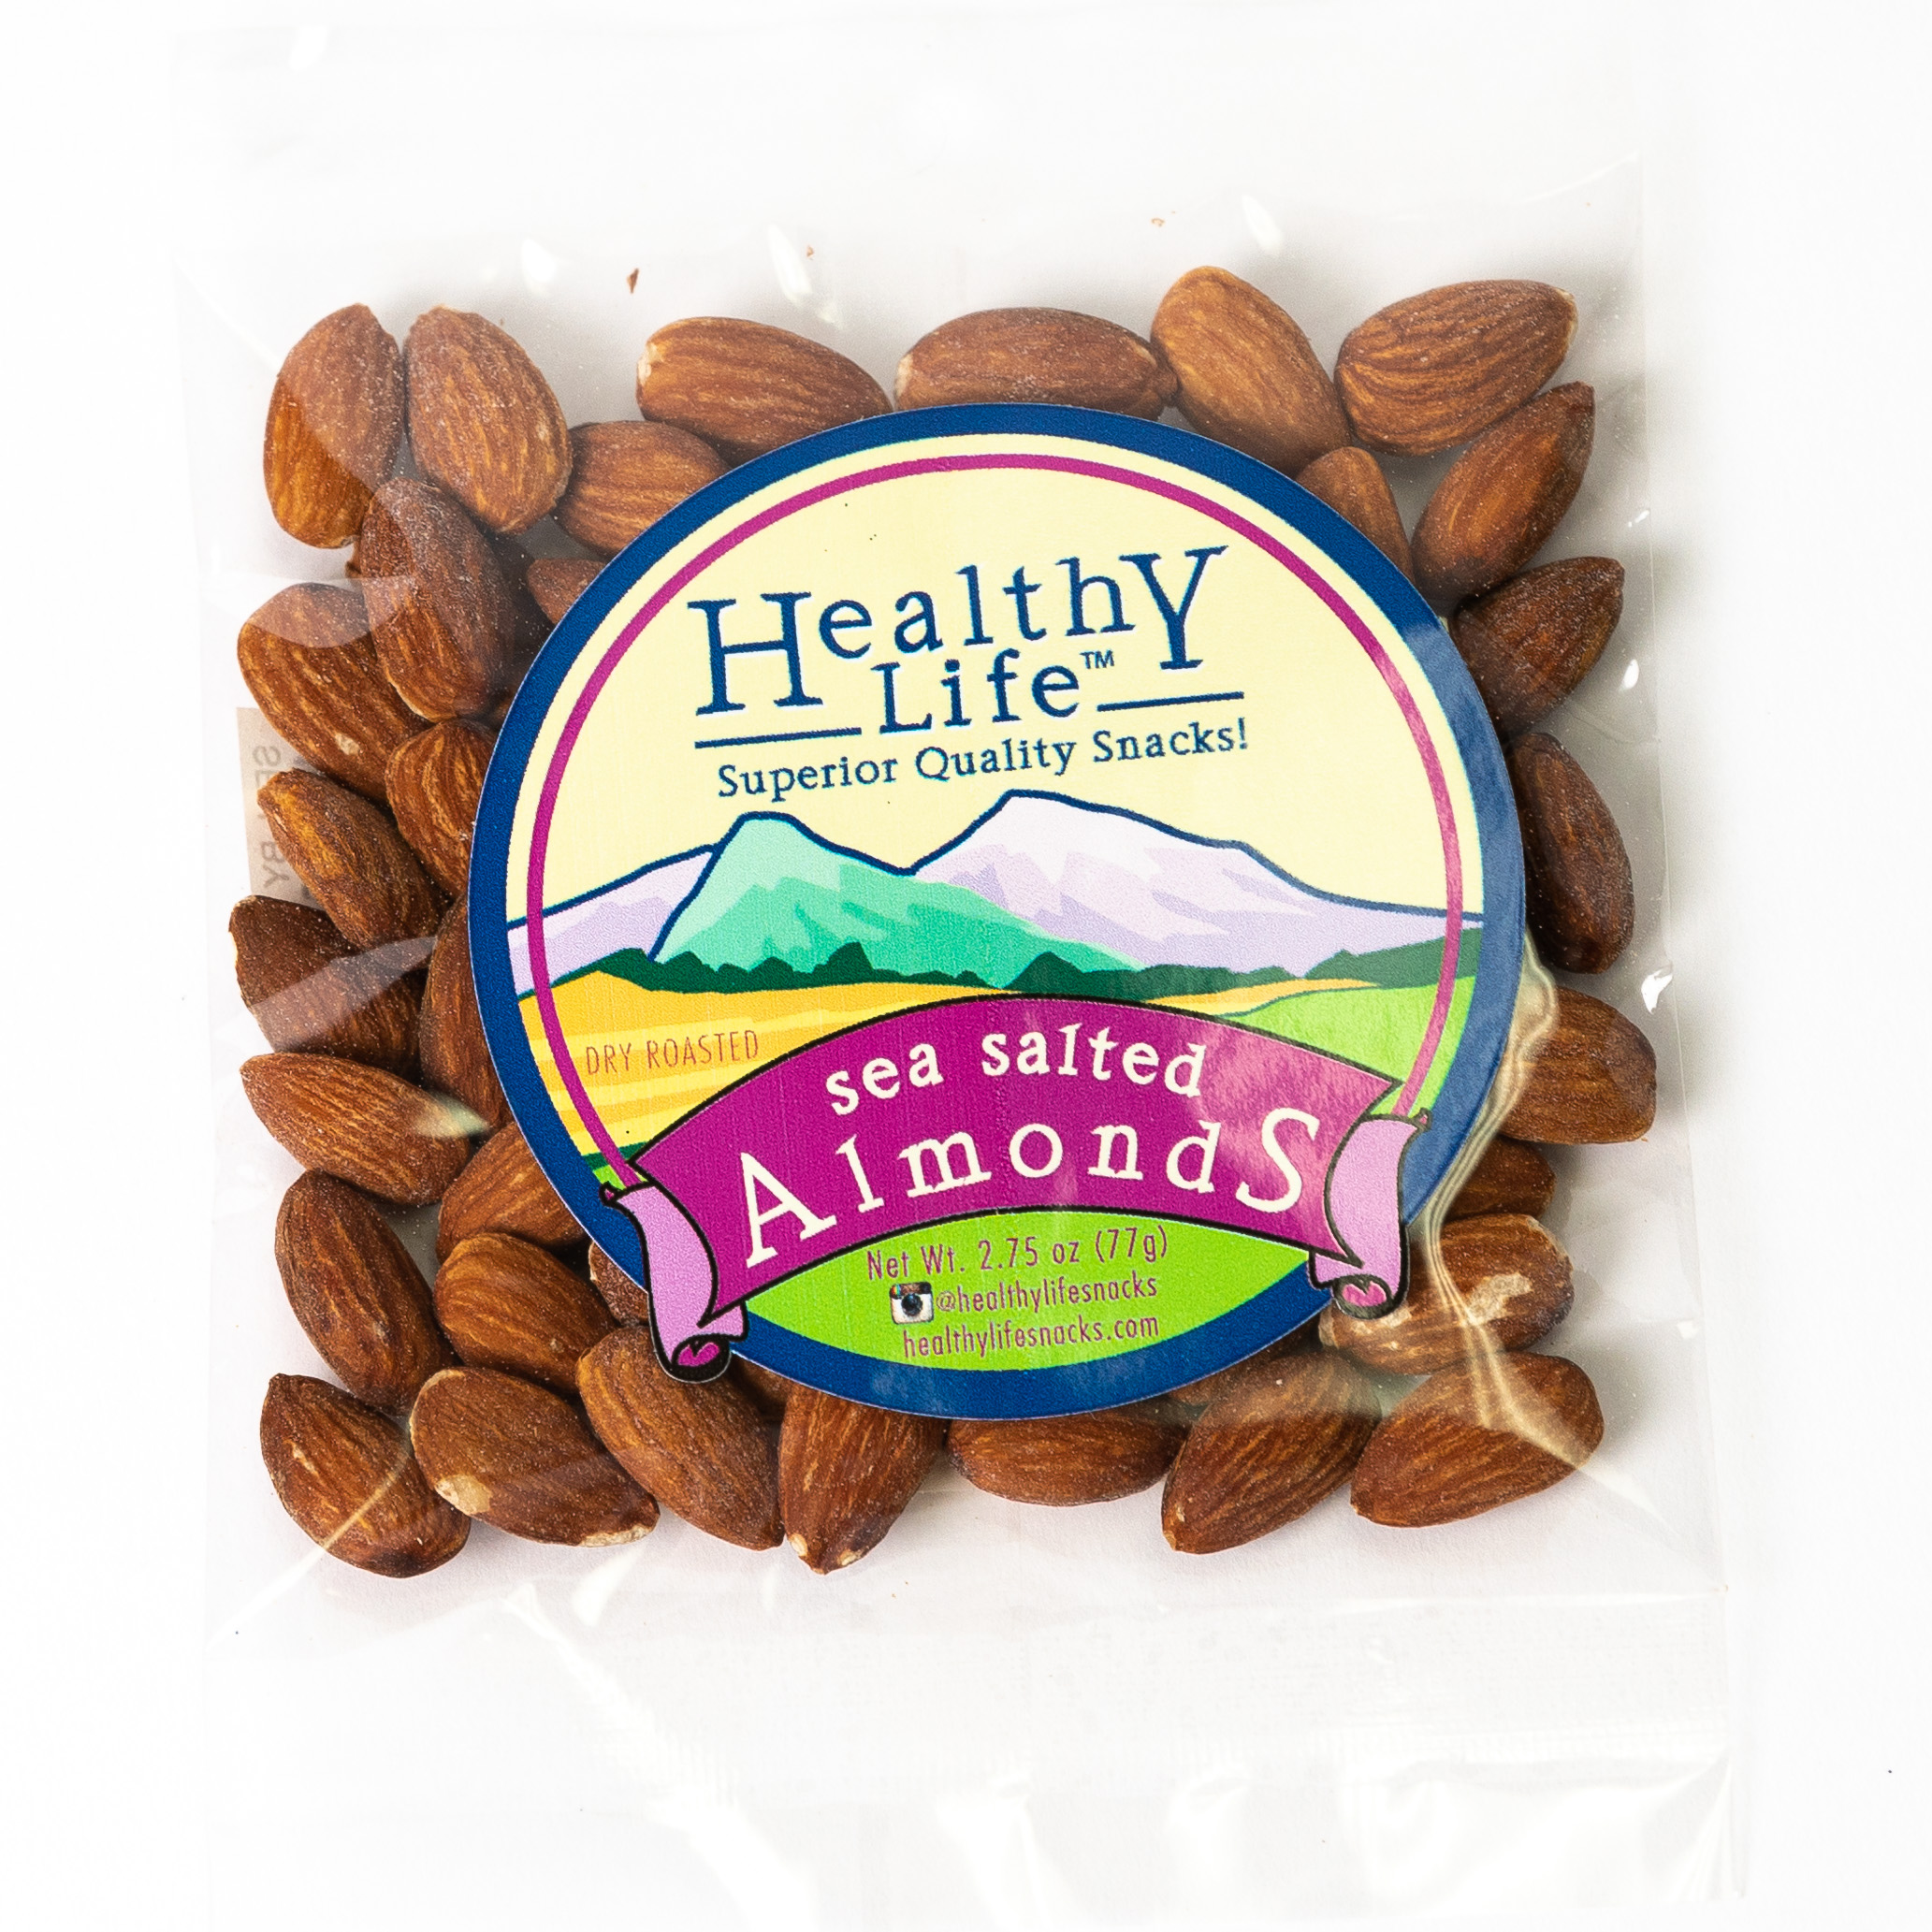 Sea Salted Almonds